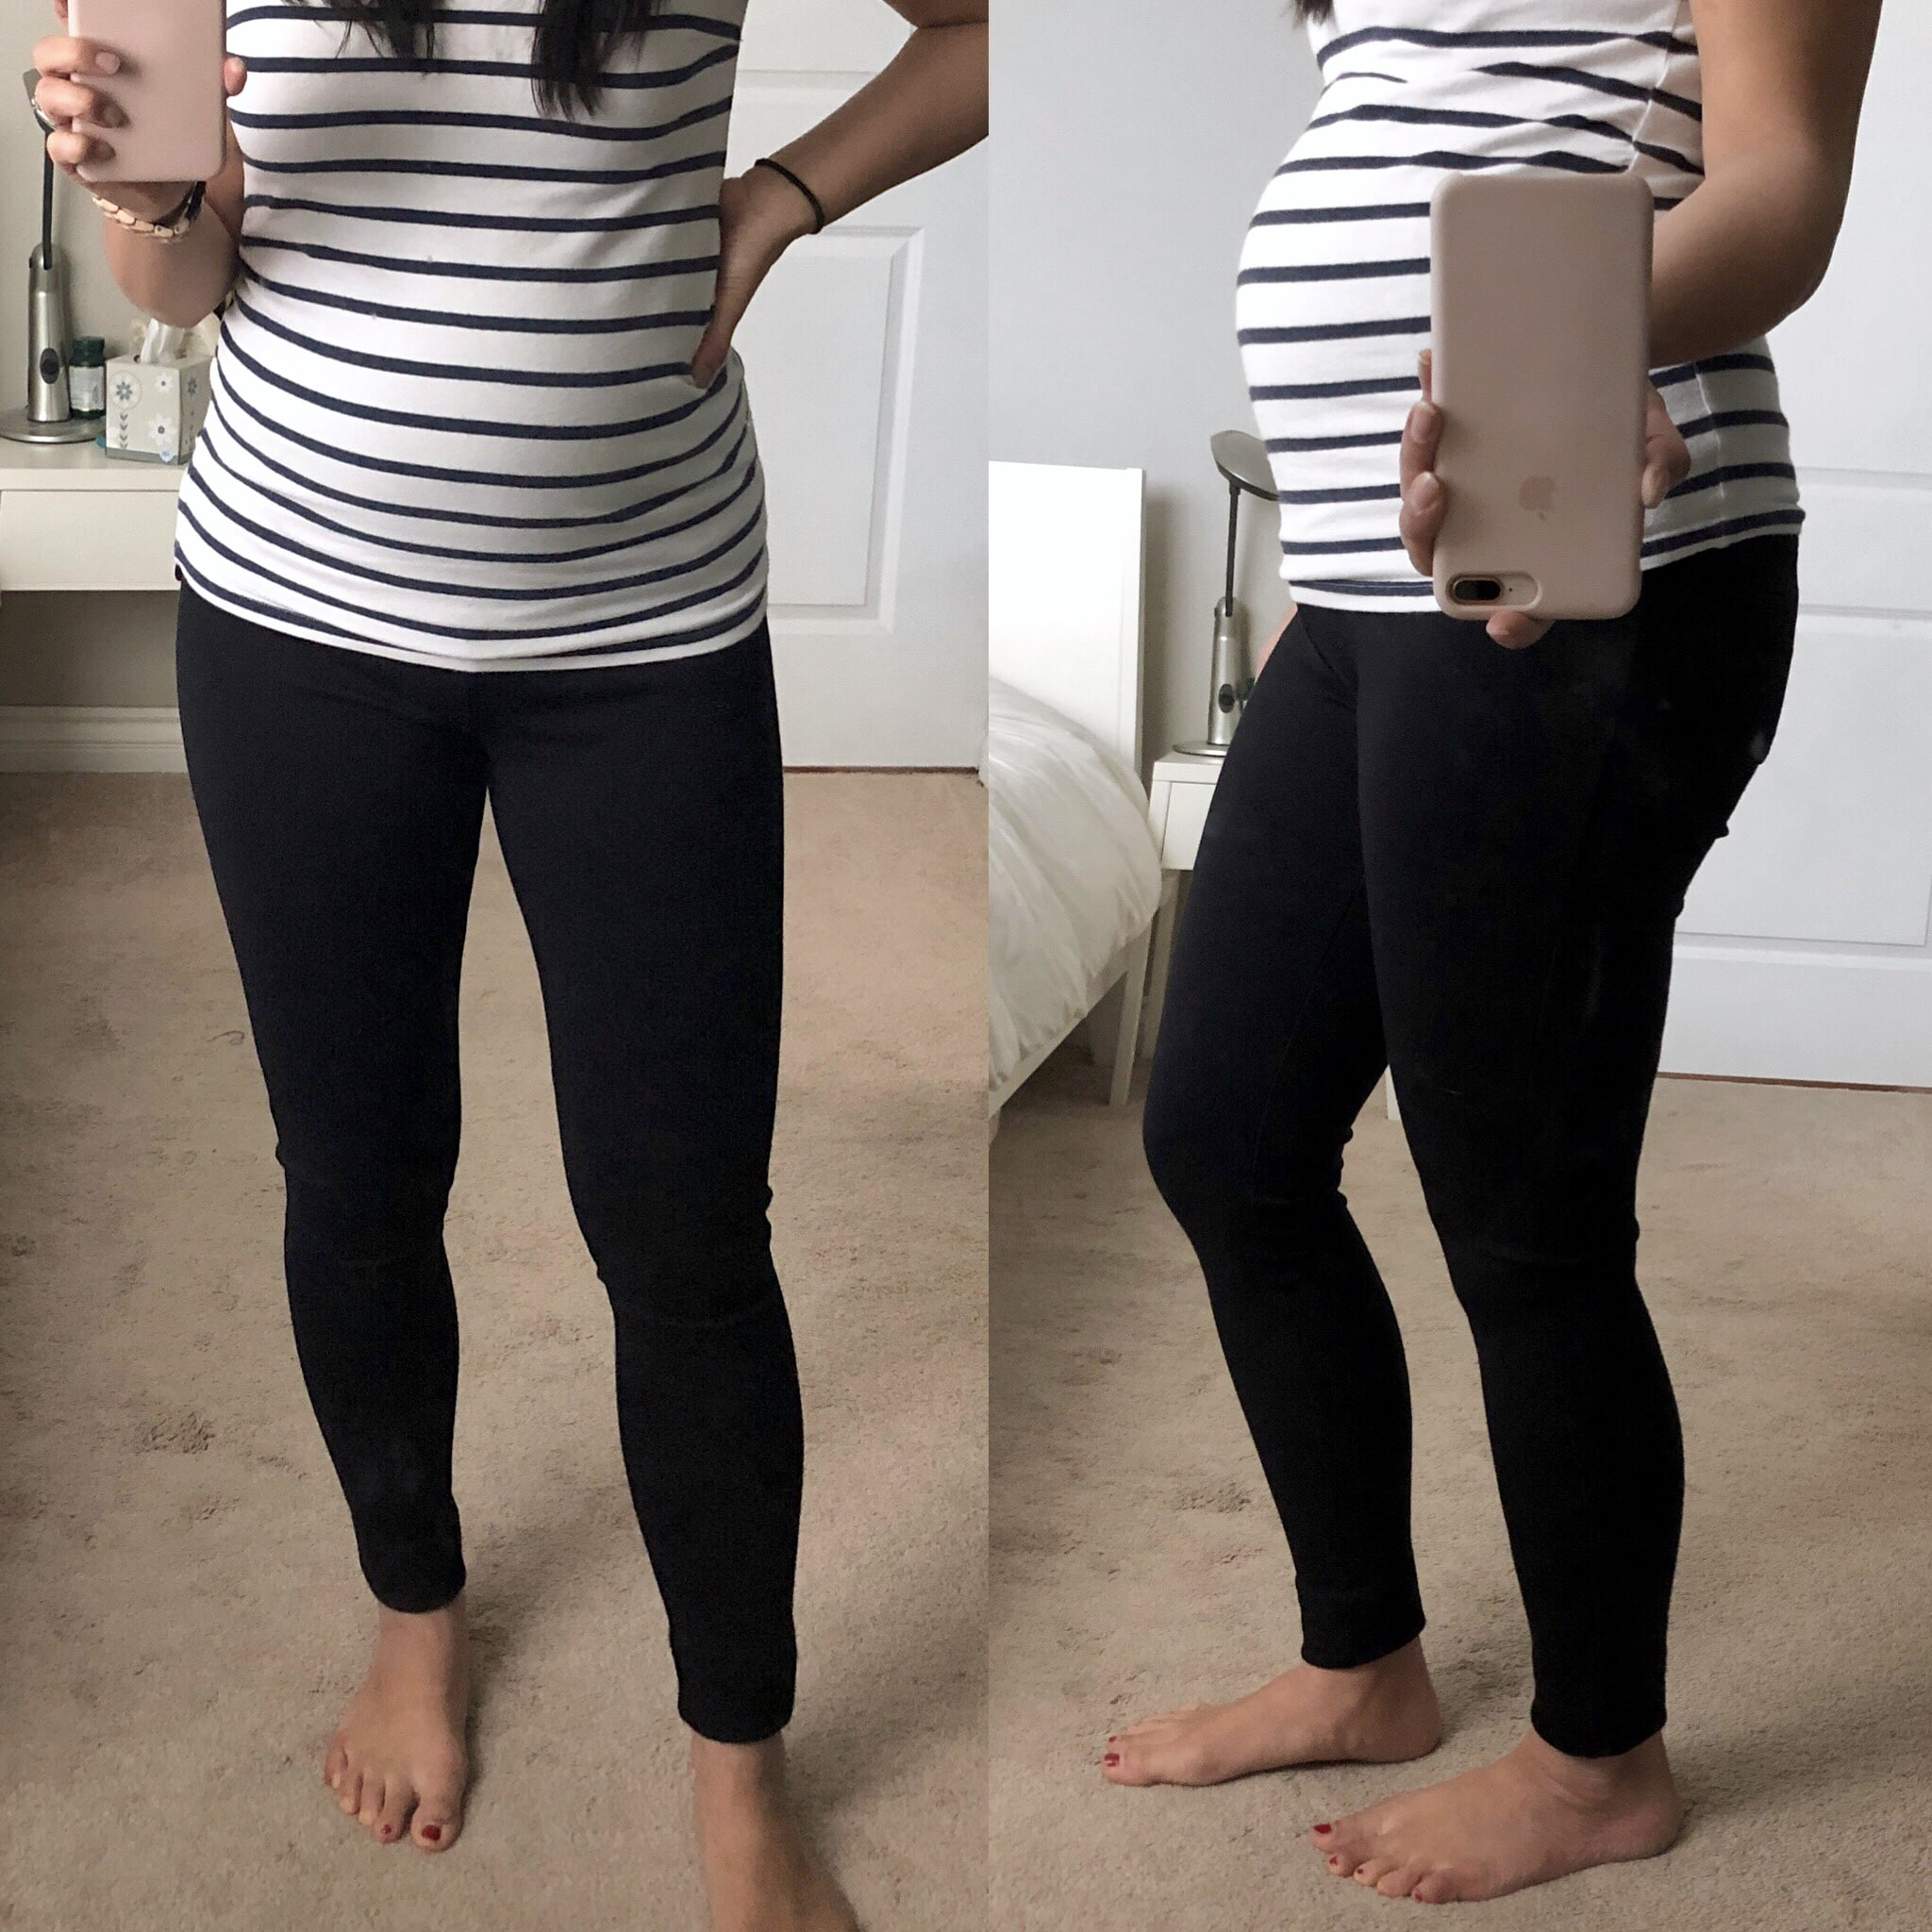 28894130cf300 Maternity Clothes Reviews - Affordable Denim, Tops, Sweaters, & Dresses